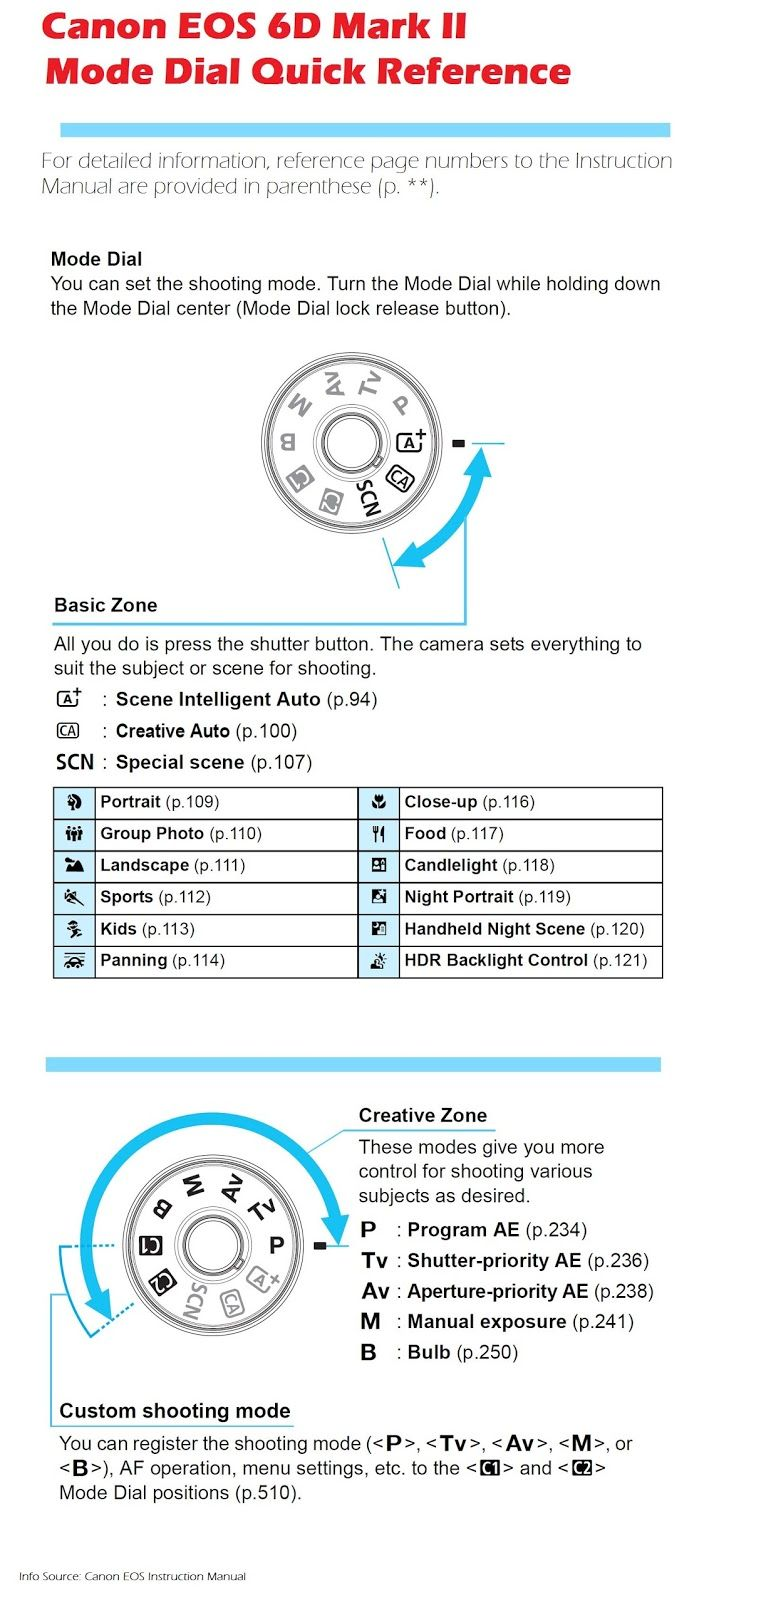 small resolution of canon eos 6d mark ii camera mode dial quick reference there s more of these useful resources just click on the image and check out the site